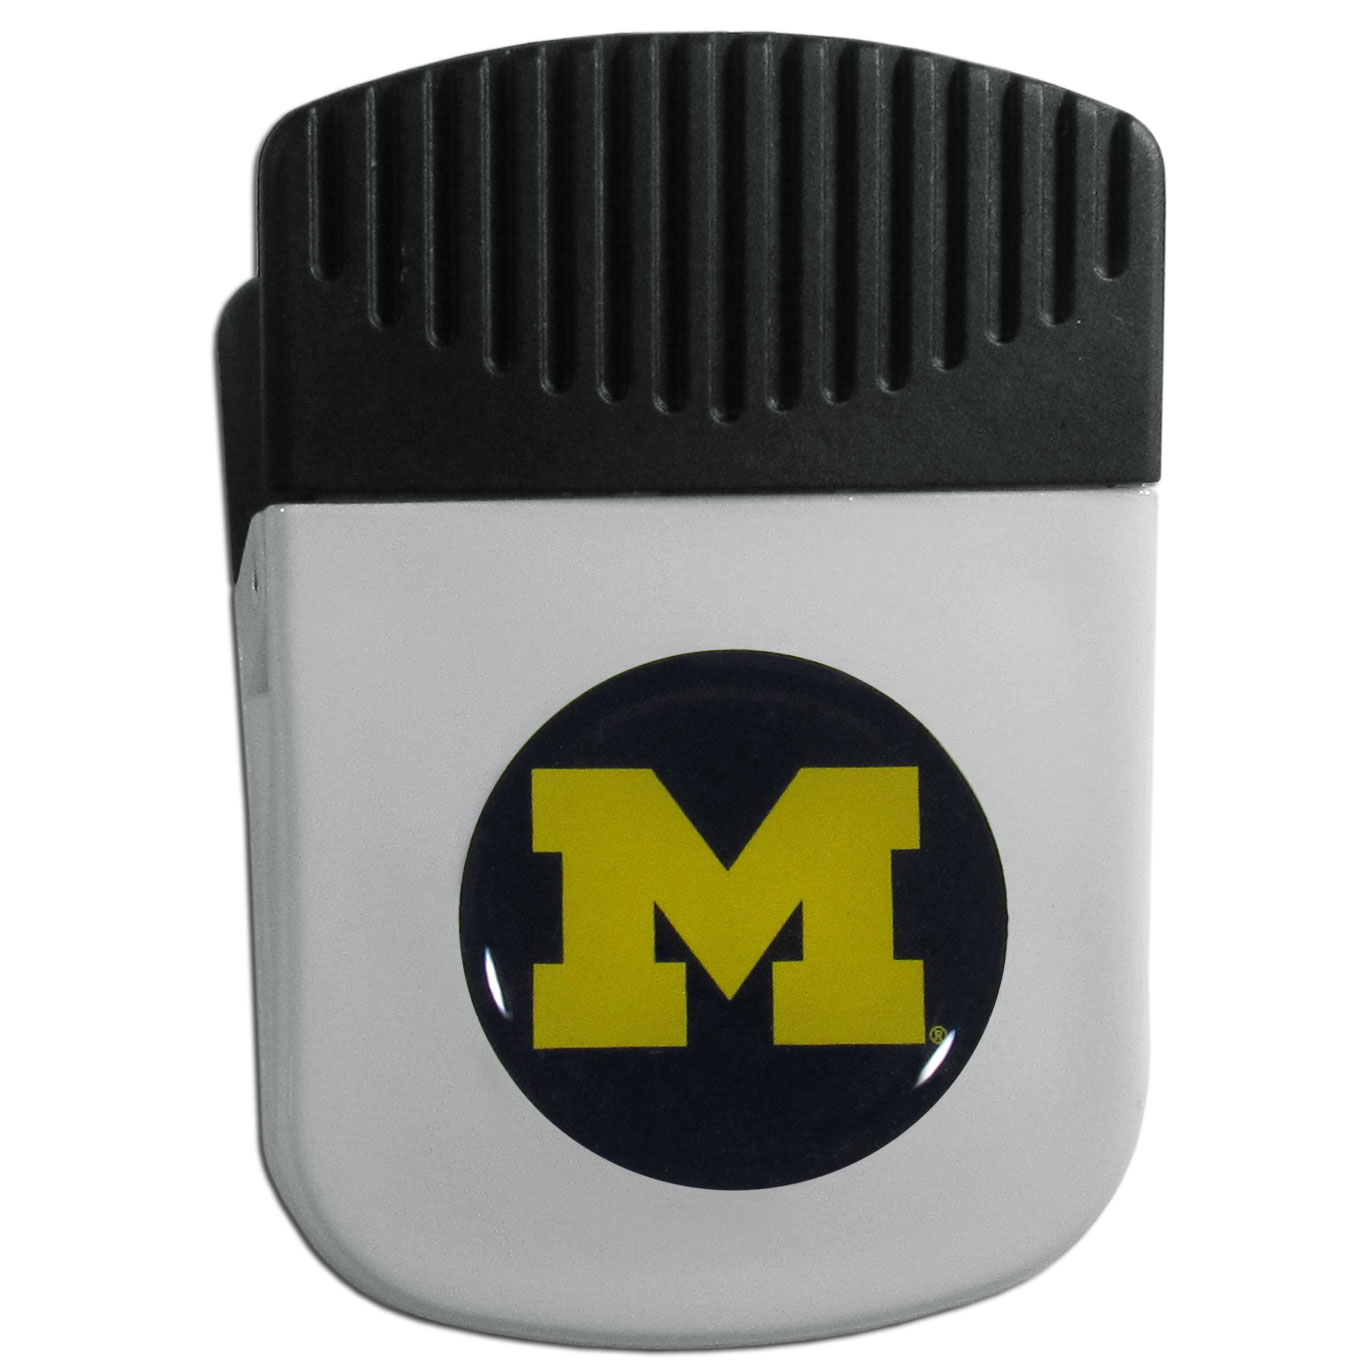 Michigan Wolverines Chip Clip Magnet - Use this attractive clip magnet to hold memos, photos or appointment cards on the fridge or take it down keep use it to clip bags shut. The magnet features a domed Michigan Wolverines logo.